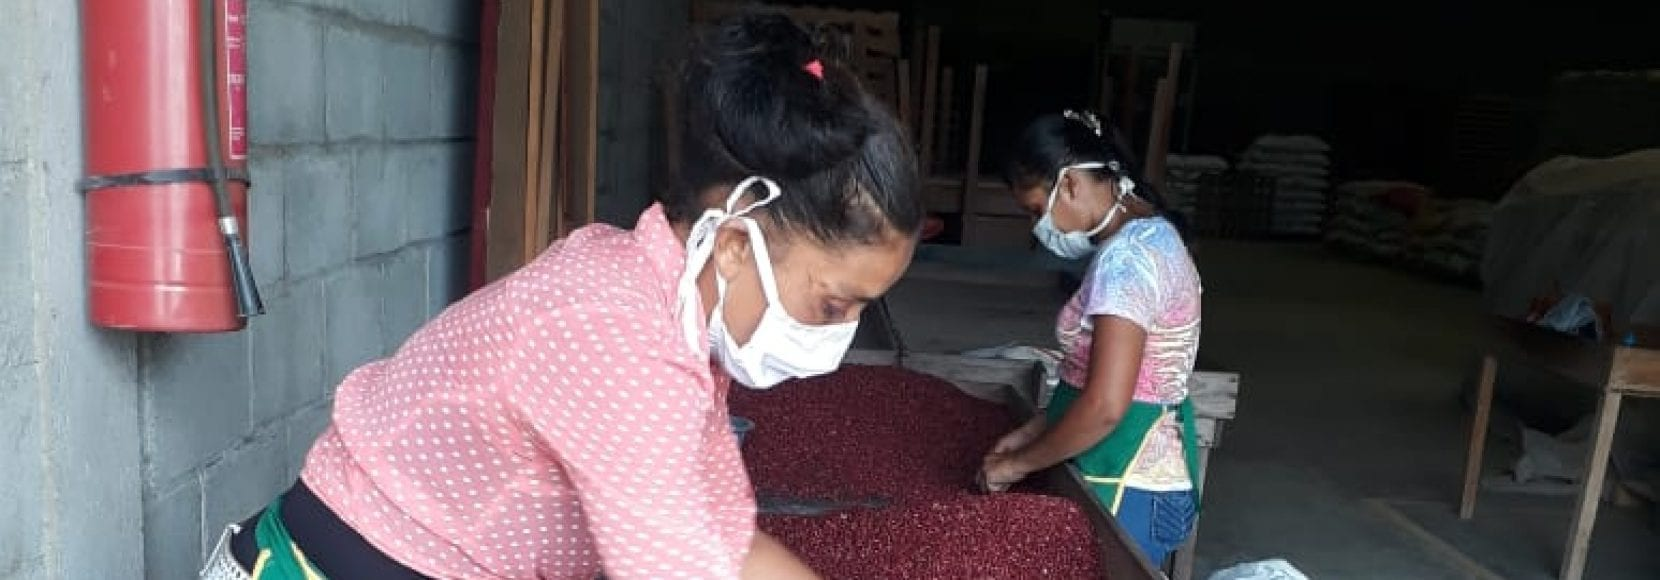 Bean farmers in MAS+ sort beans while physically distant and wearing masks.